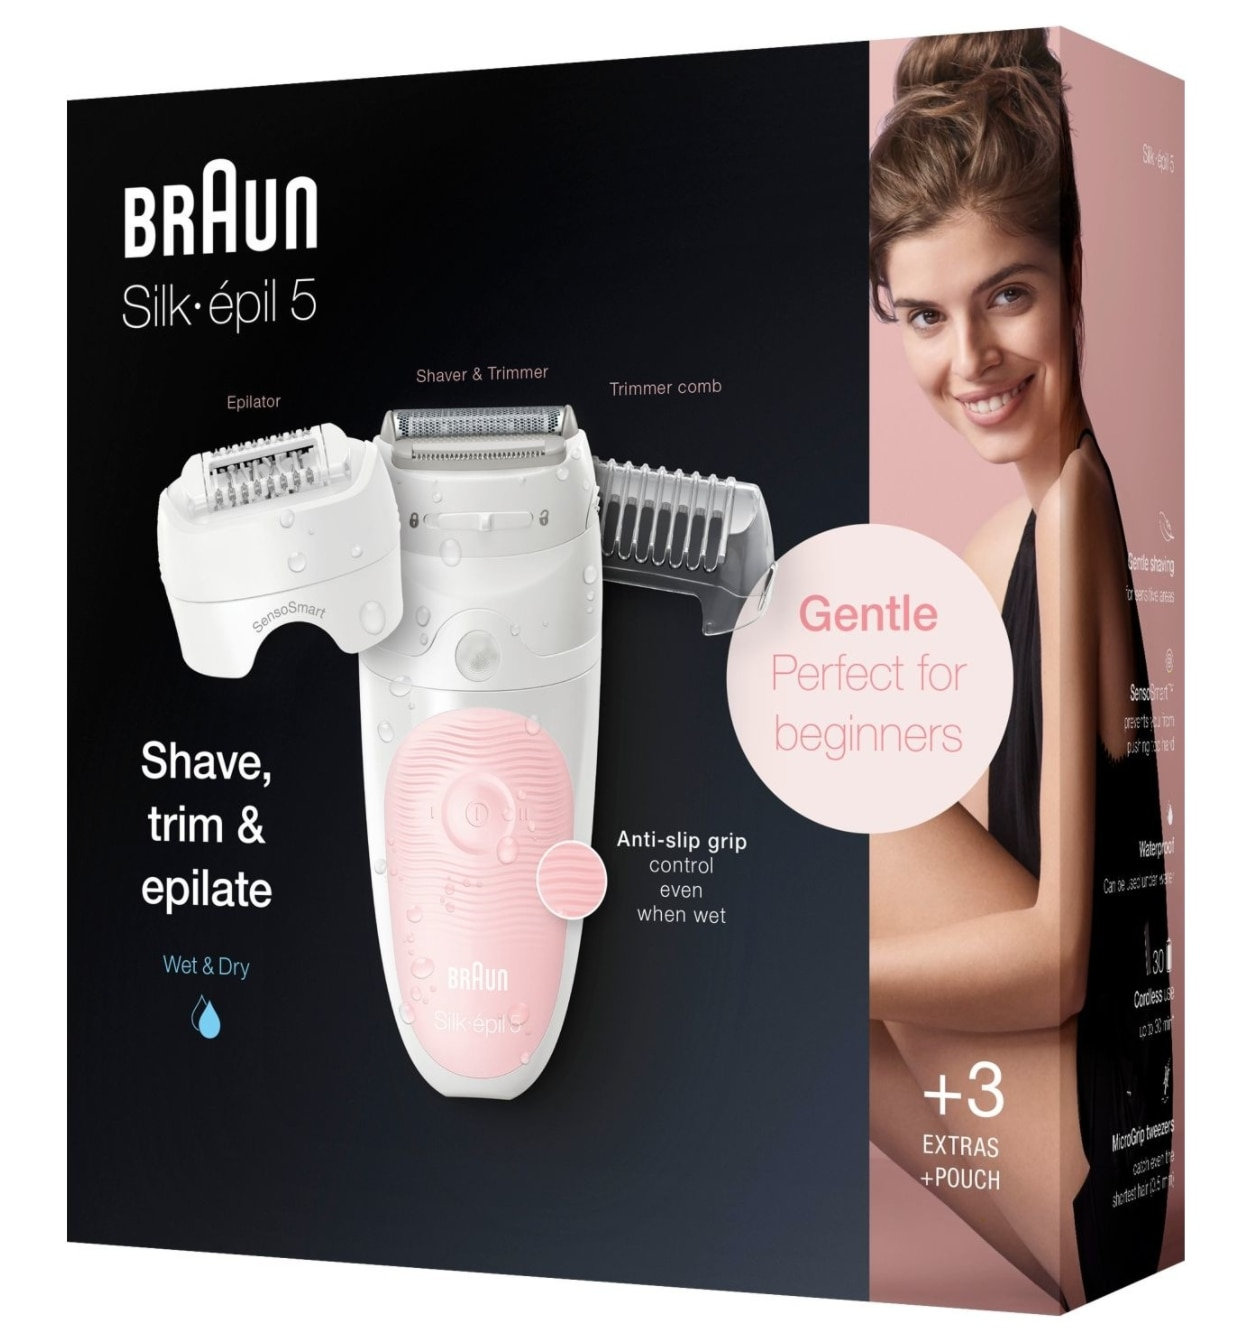 Braun Silk-epil 5 5620 Epilator Women's Wet & Dry Hair Removal Painless Thread Machine, Shaver, Trimmer, Cordless, Rechargeable enlarge